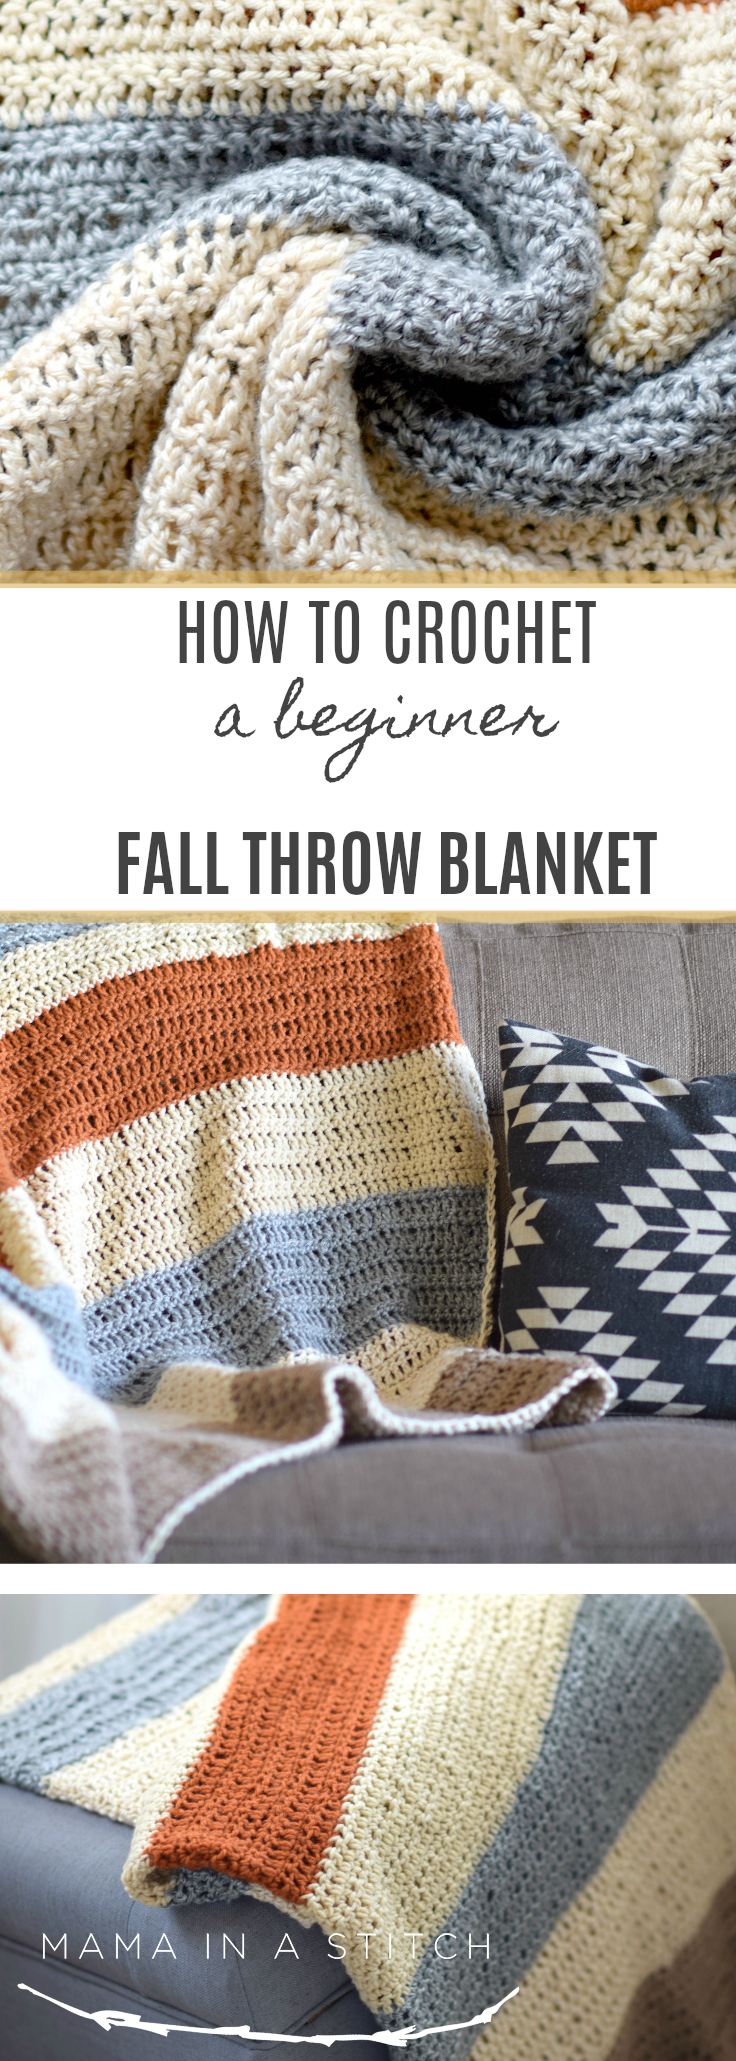 This project is perfect for beginner crocheters as the blanket is so easy to make! Free pattern with helpful tutorials as well. #crafts #fall #diy #crochet